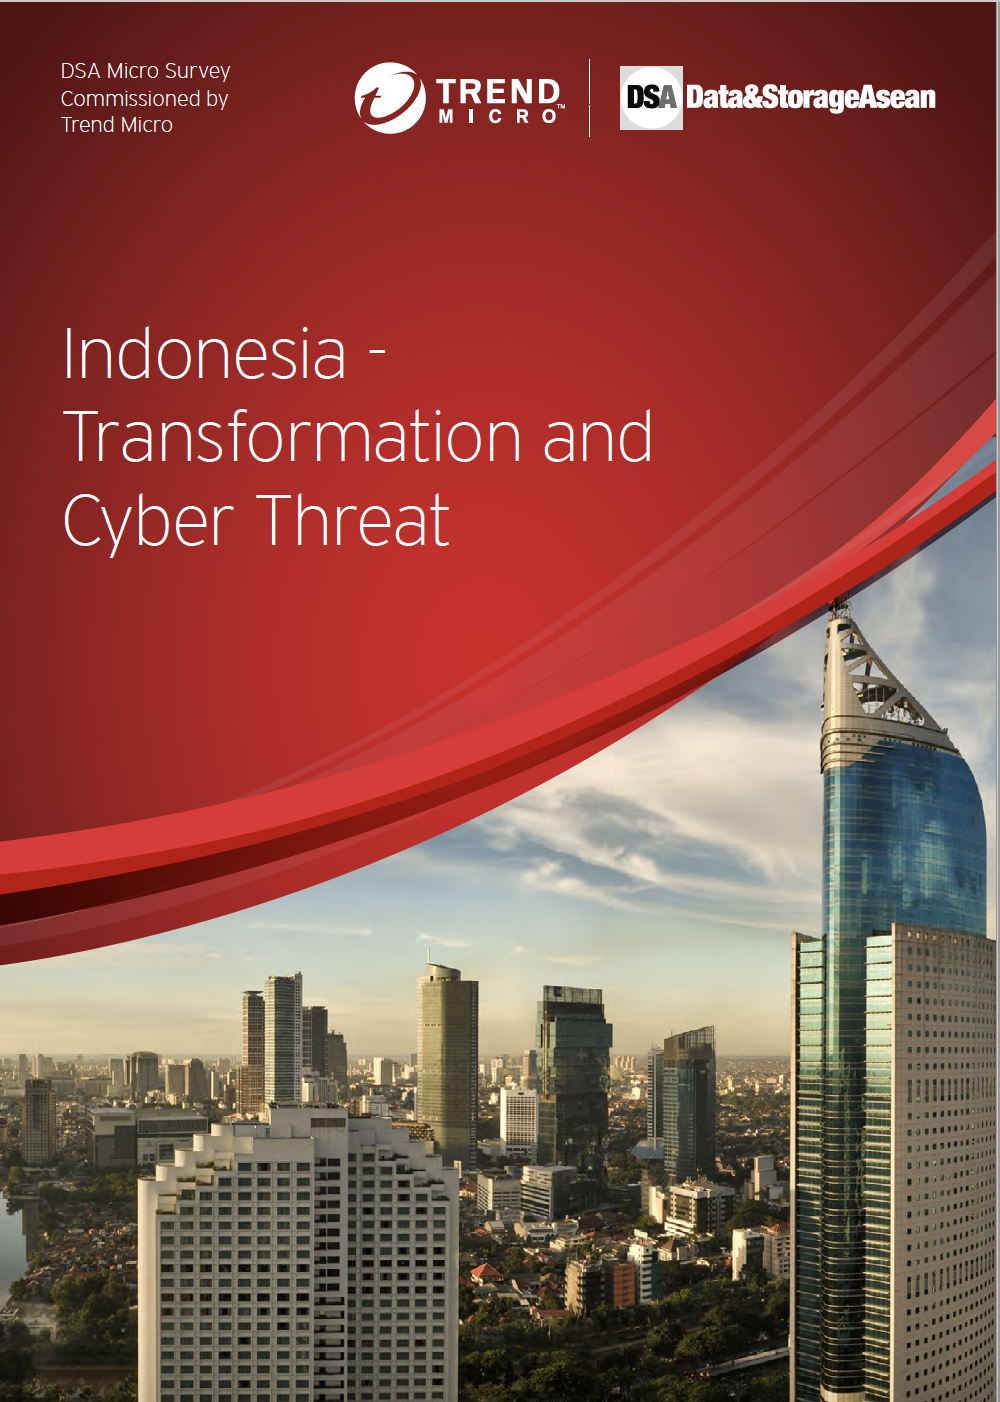 DSA Micro Survey Indonesia - Transformation and Cyber Threat Commissioned by Trend Micro.pdf